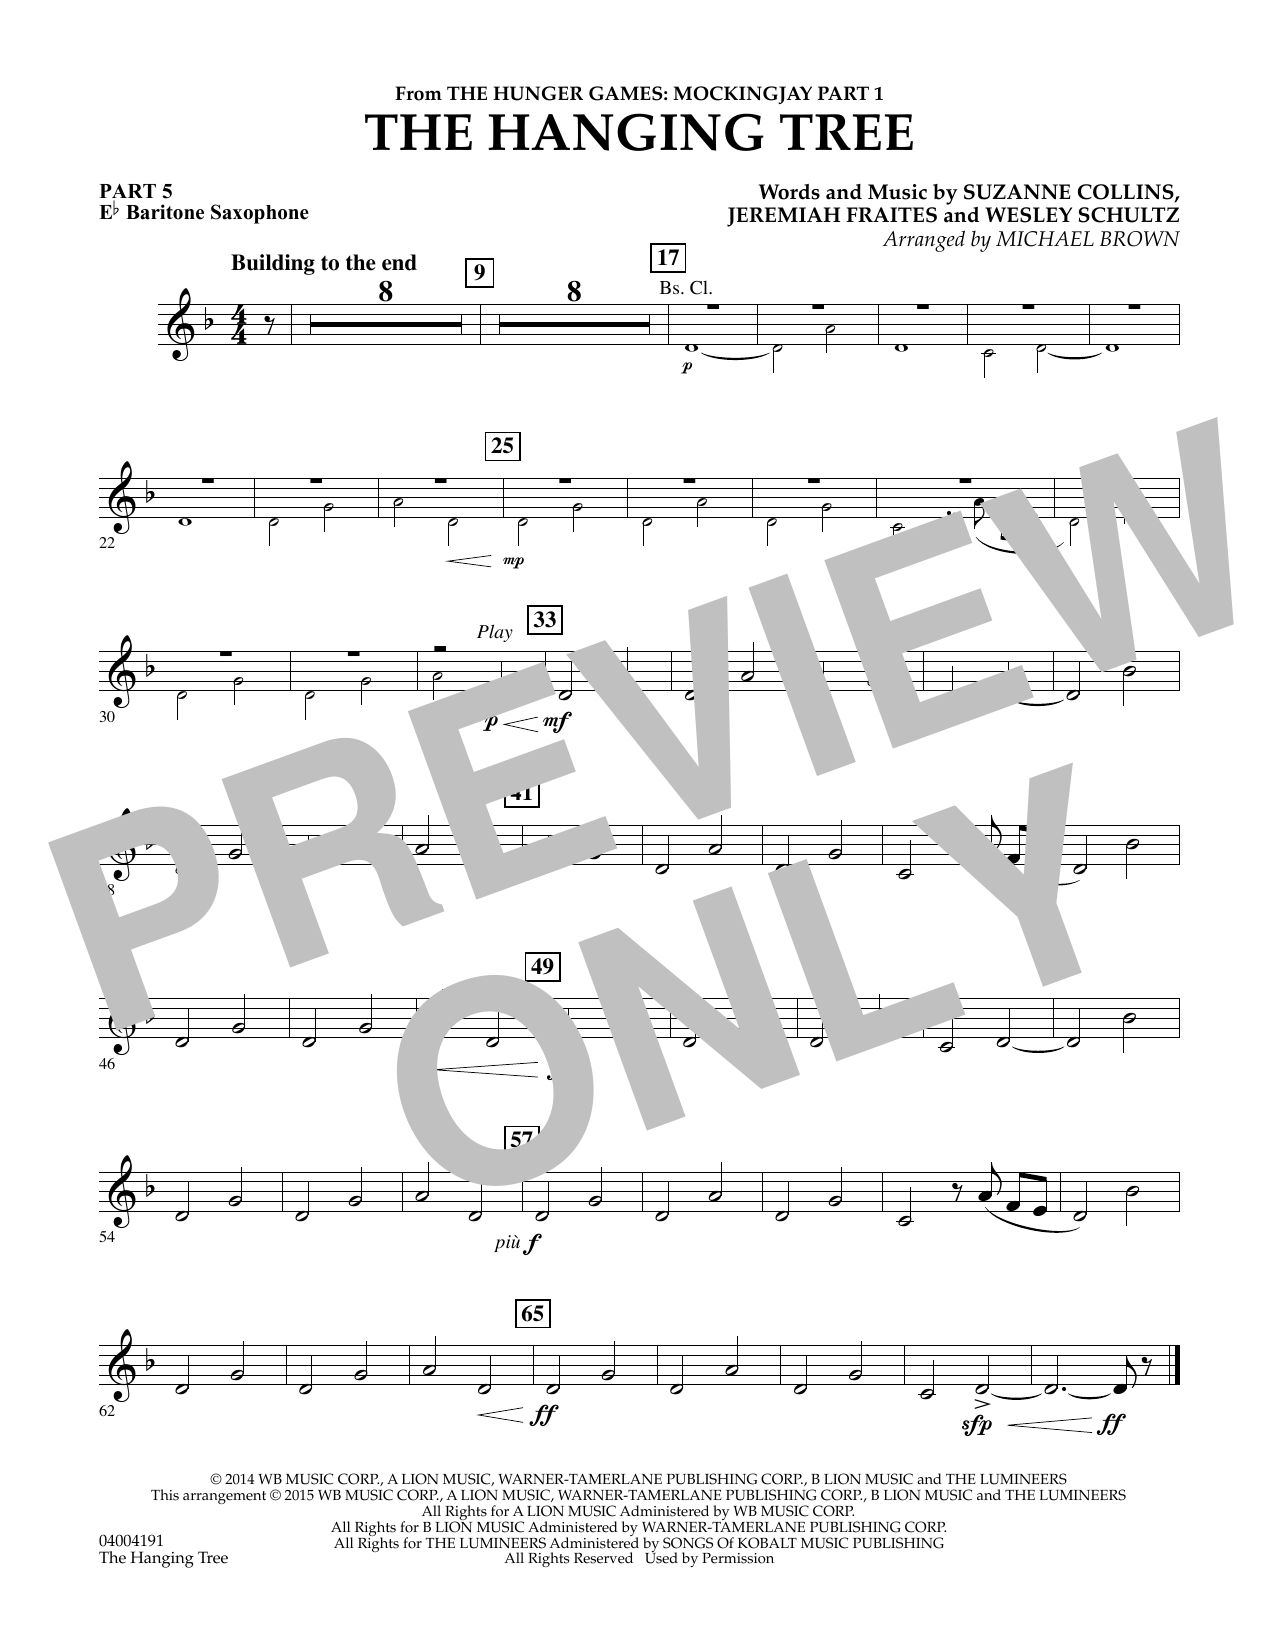 Michael Brown The Hanging Tree (from The Hunger Games: Mockingjay Part 1) - Pt.5 - Eb Baritone Saxophone sheet music notes and chords. Download Printable PDF.